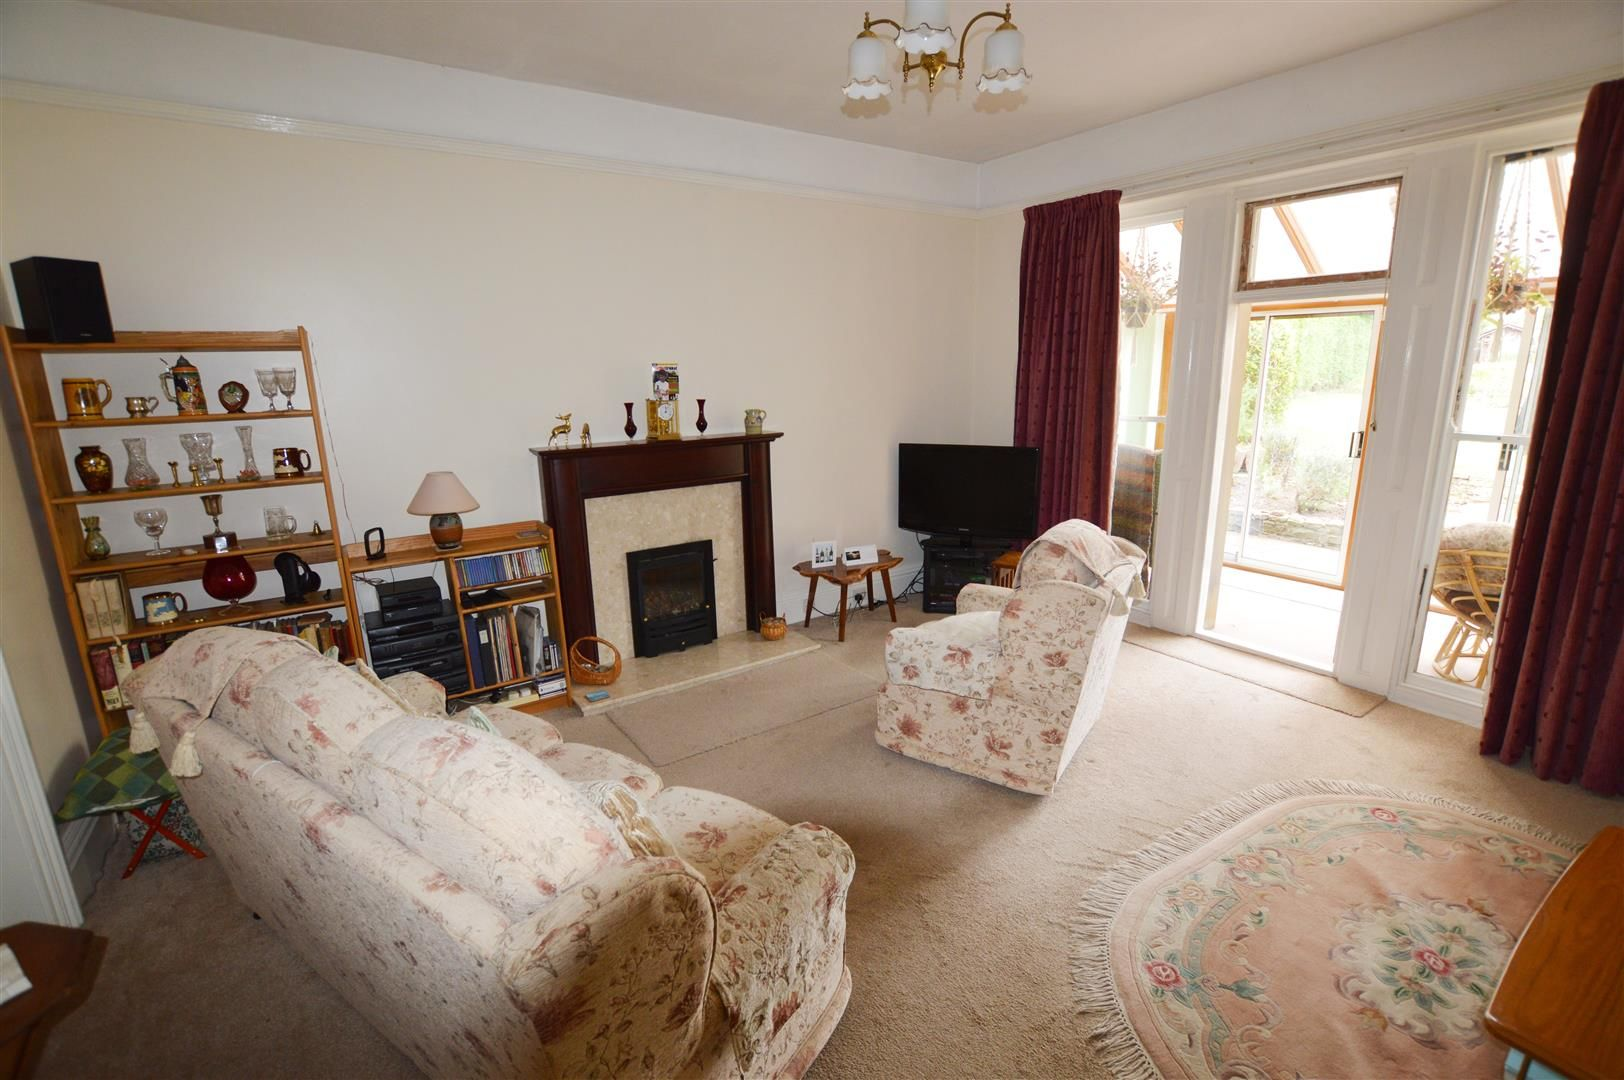 6 bed detached for sale in Leominster  - Property Image 4